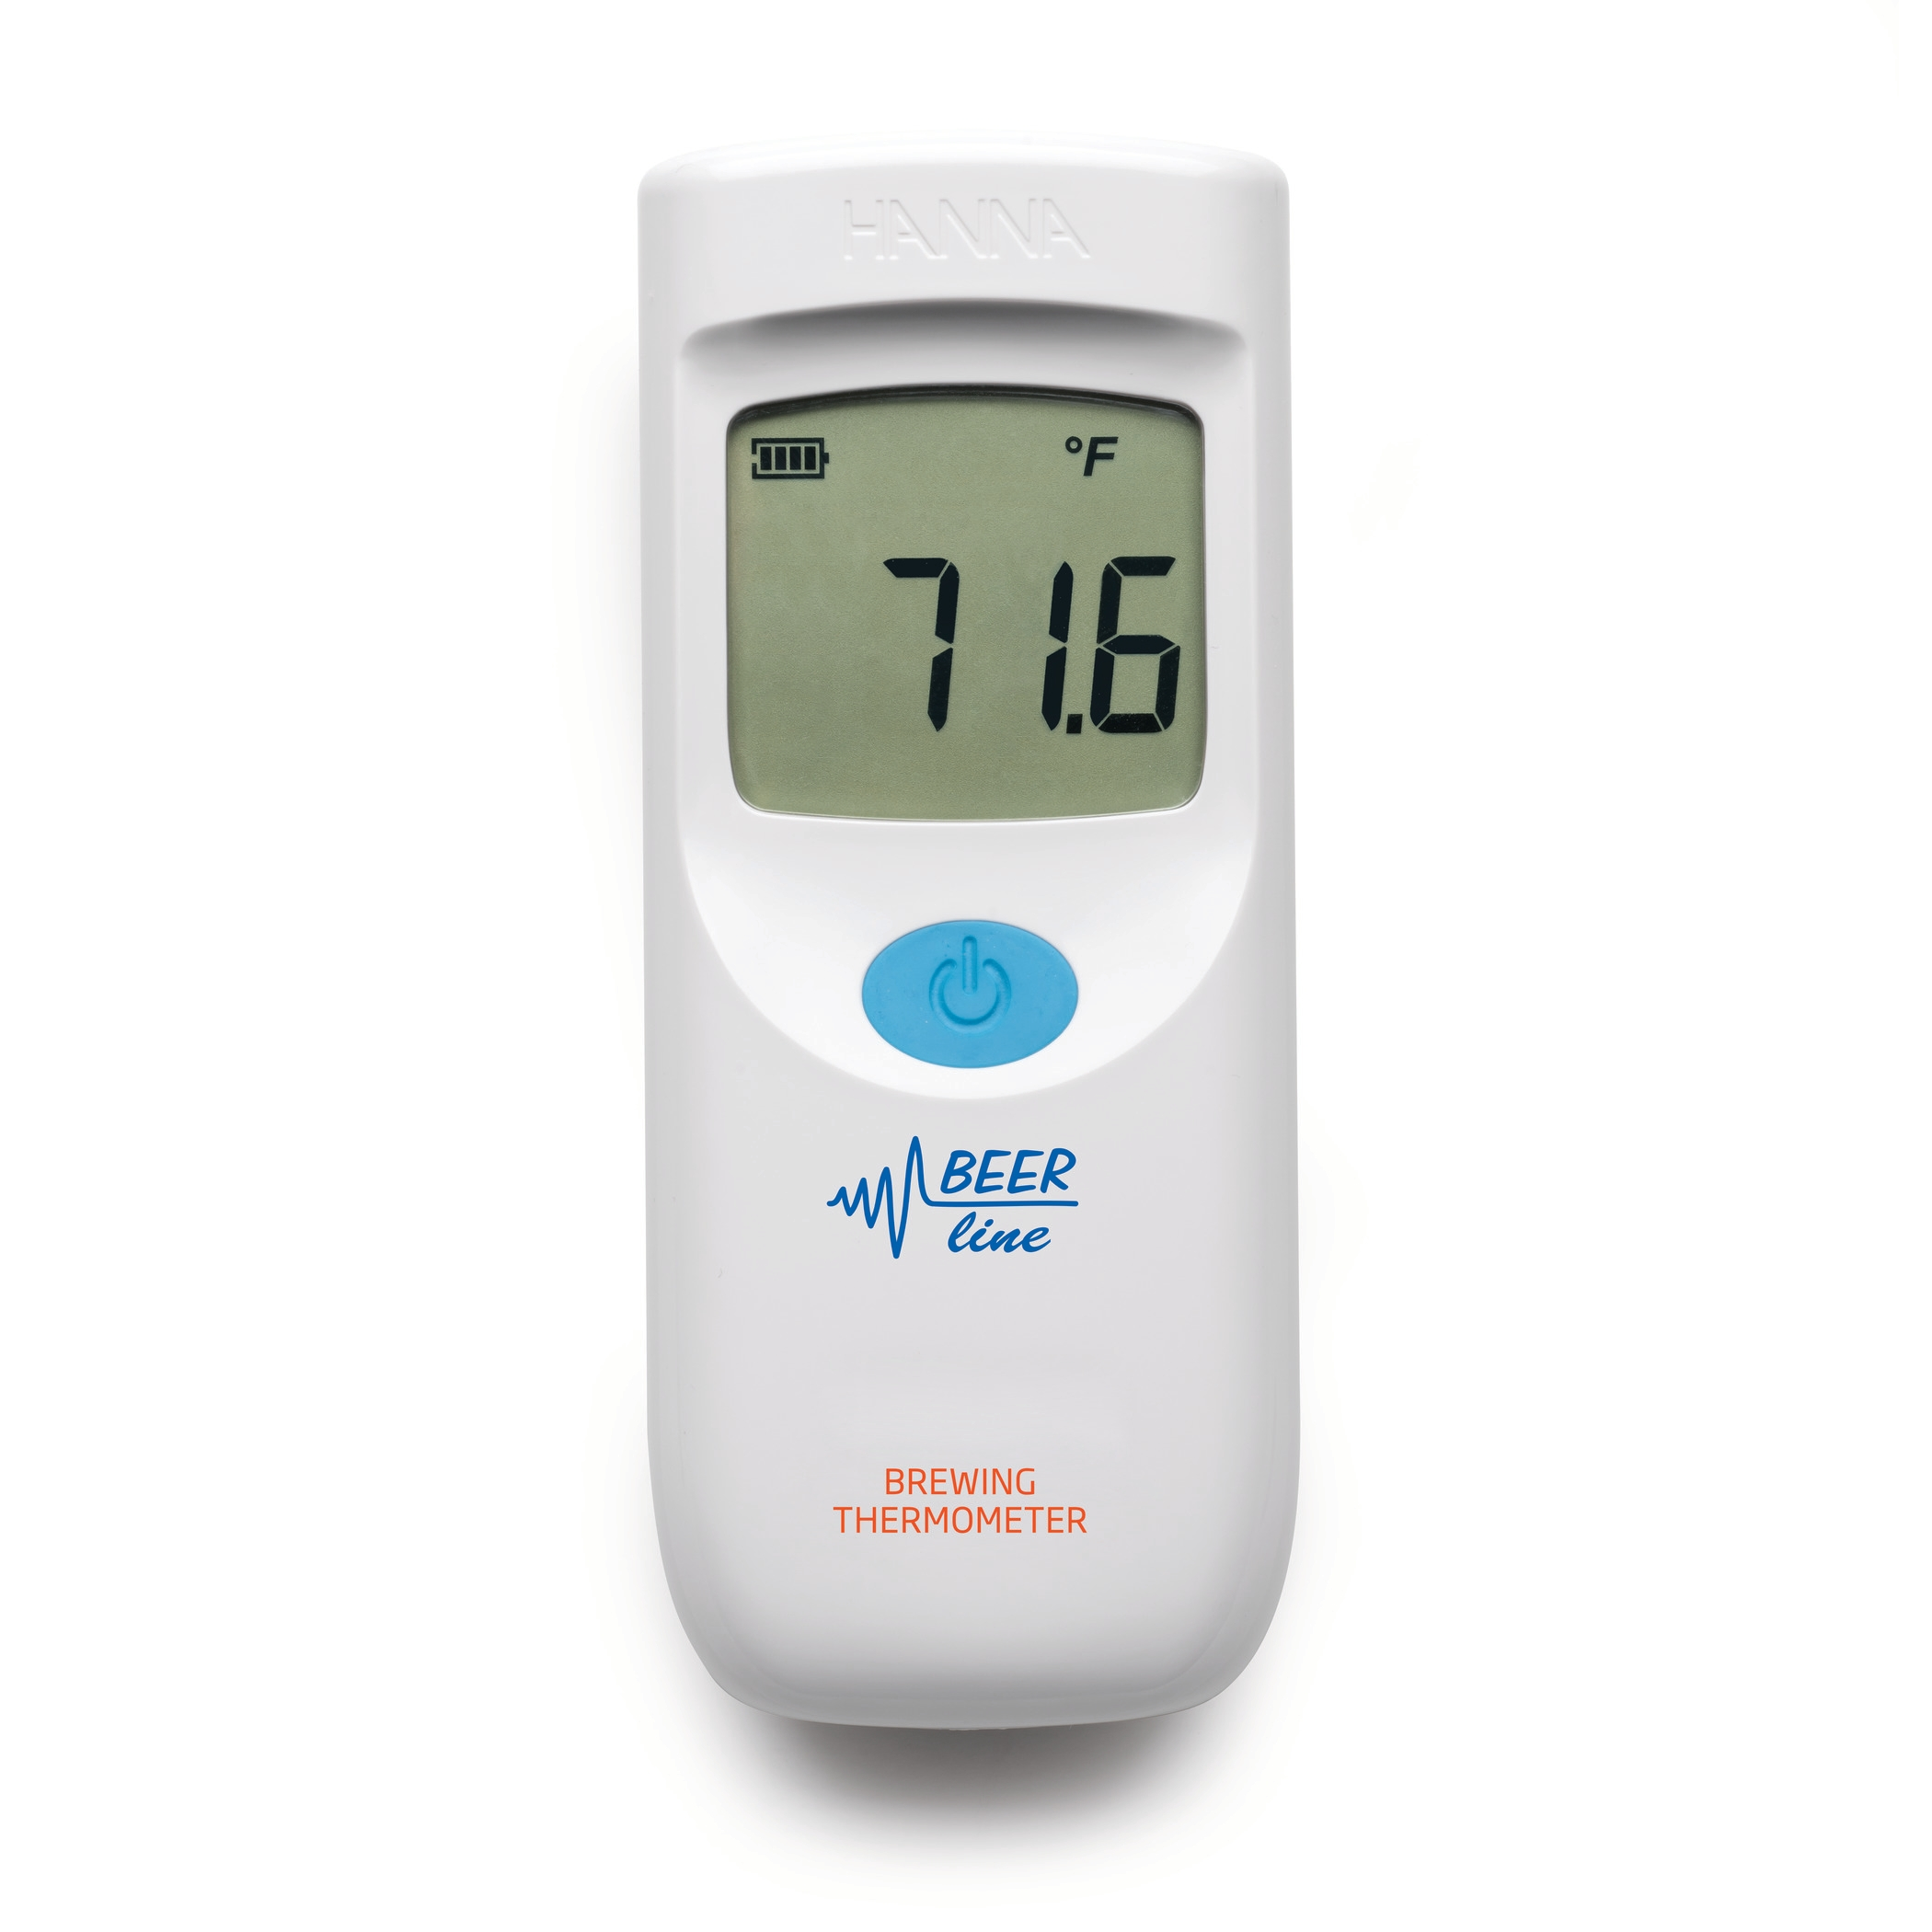 HI935012 brewing thermometer